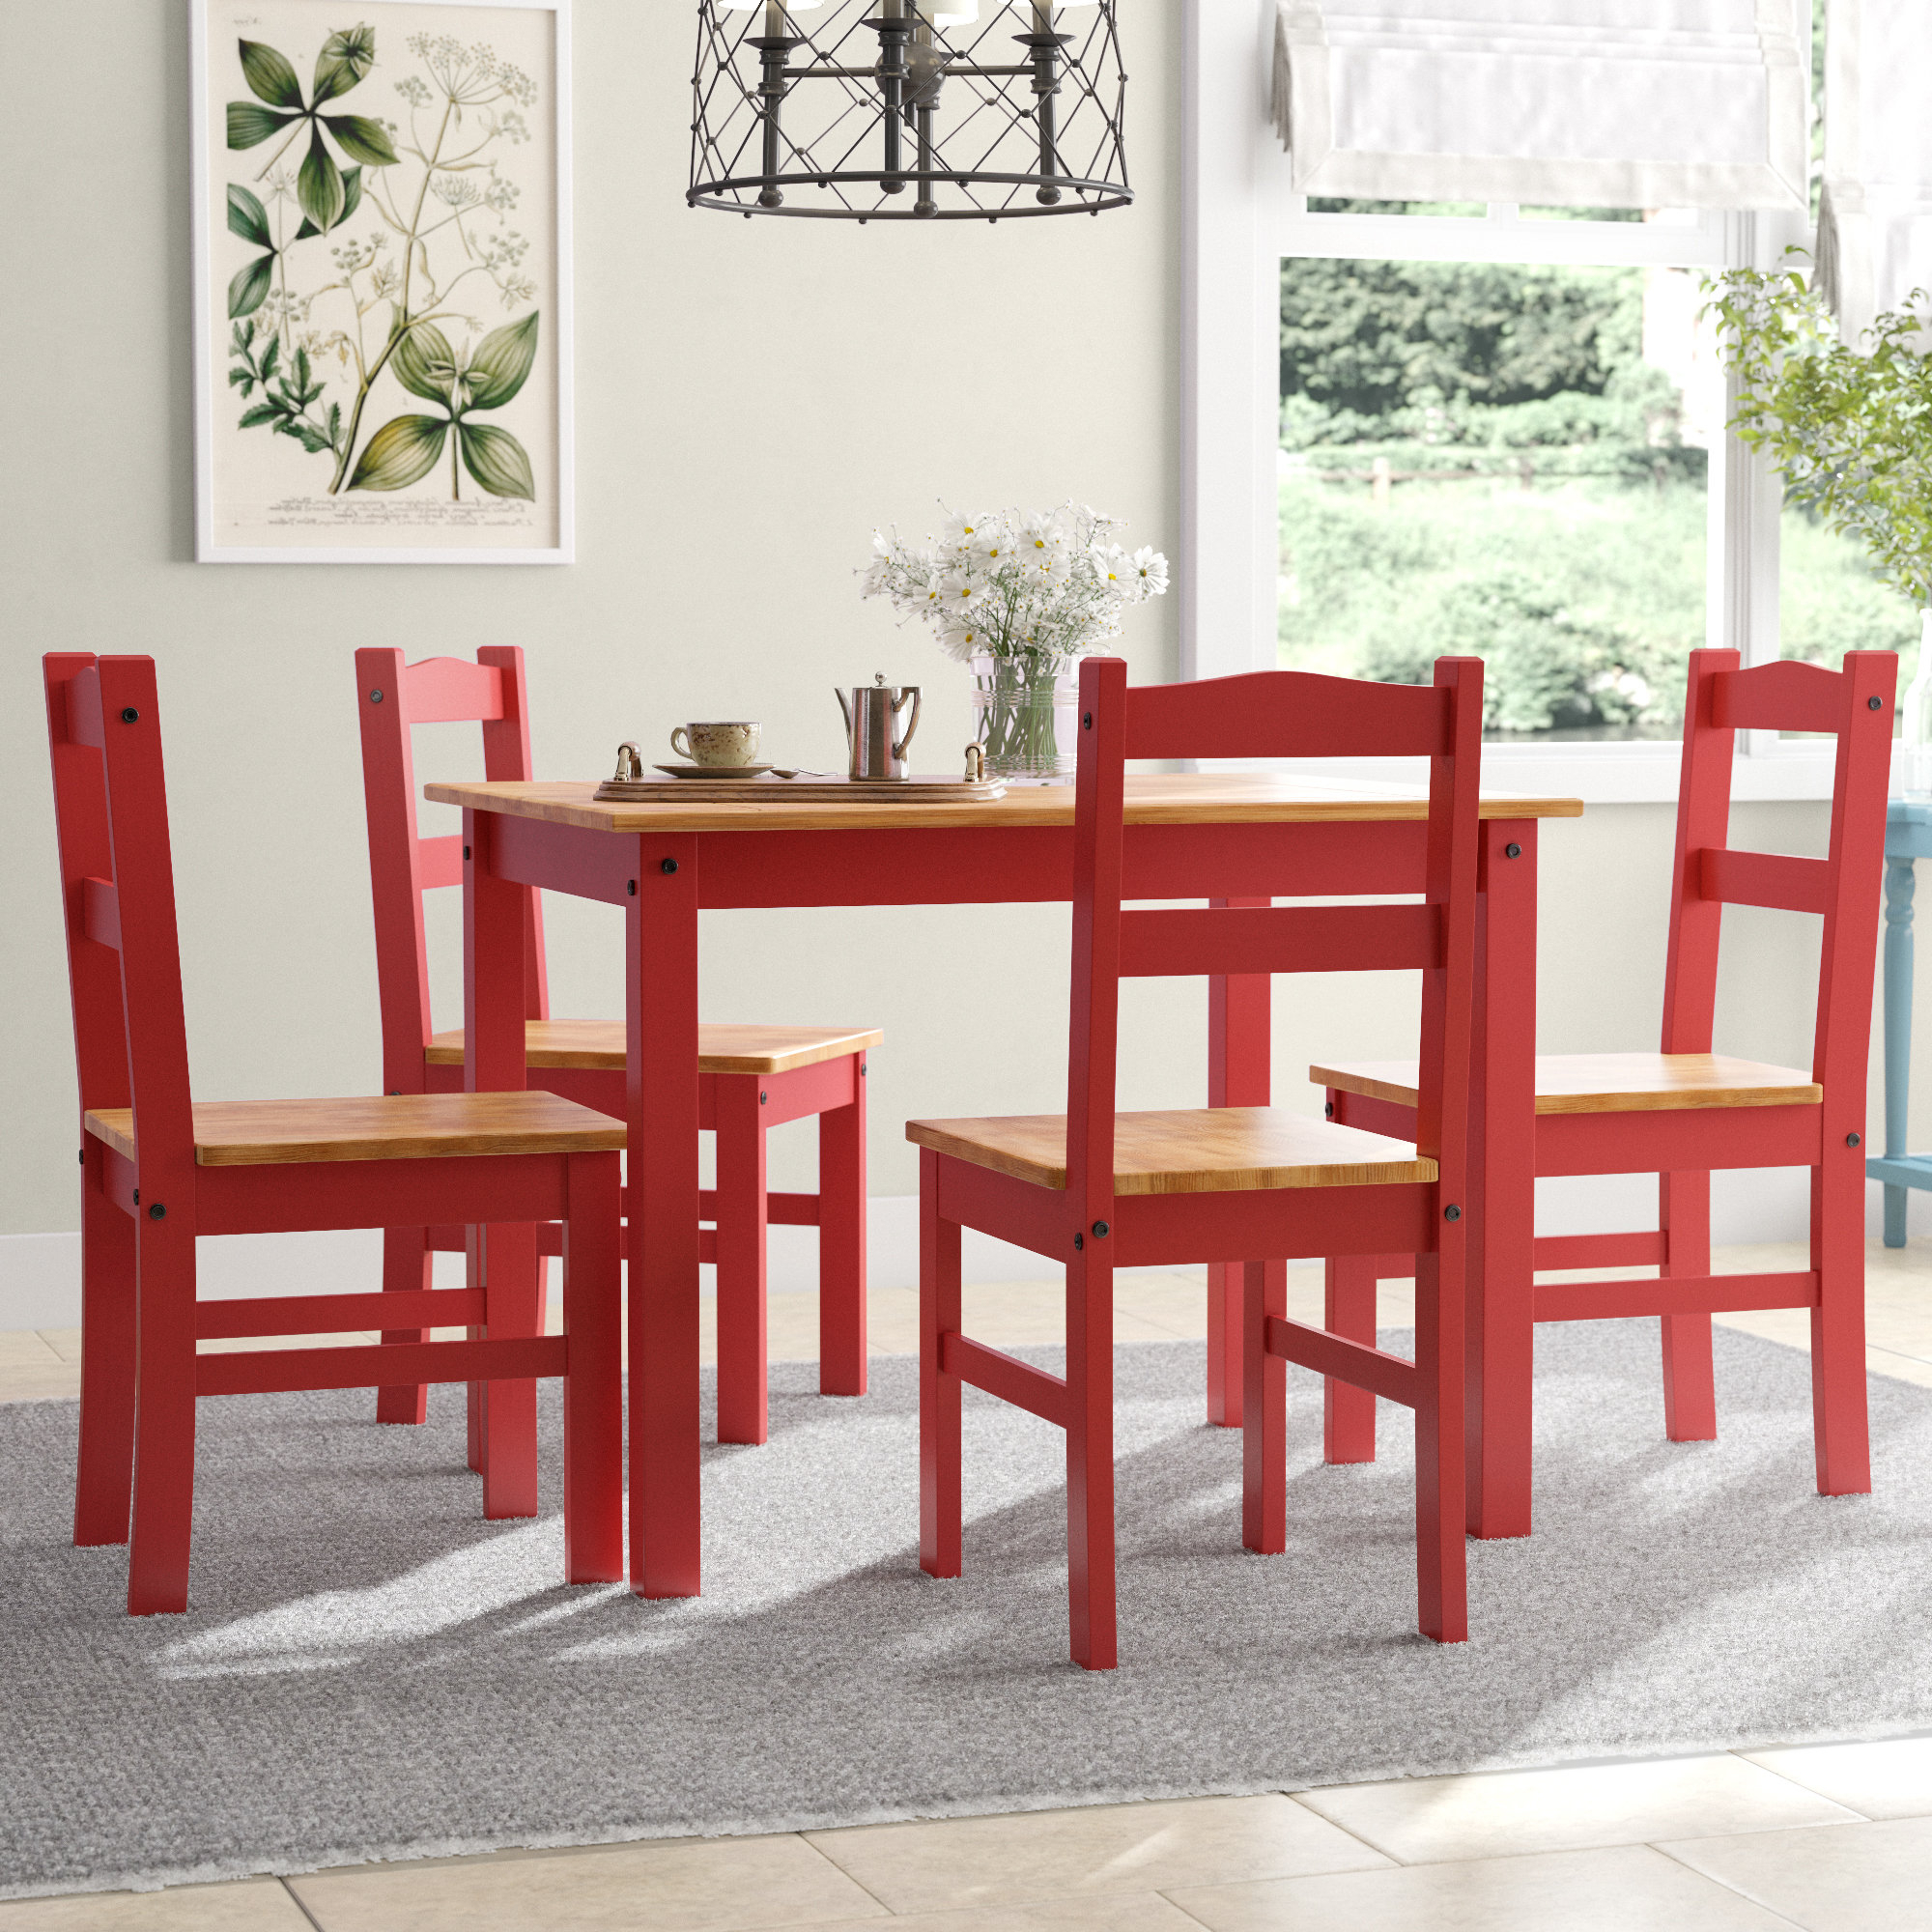 Rodgers 5 Piece Solid Wood Dining Set Throughout Most Up To Date Yedinak 5 Piece Solid Wood Dining Sets (View 12 of 20)